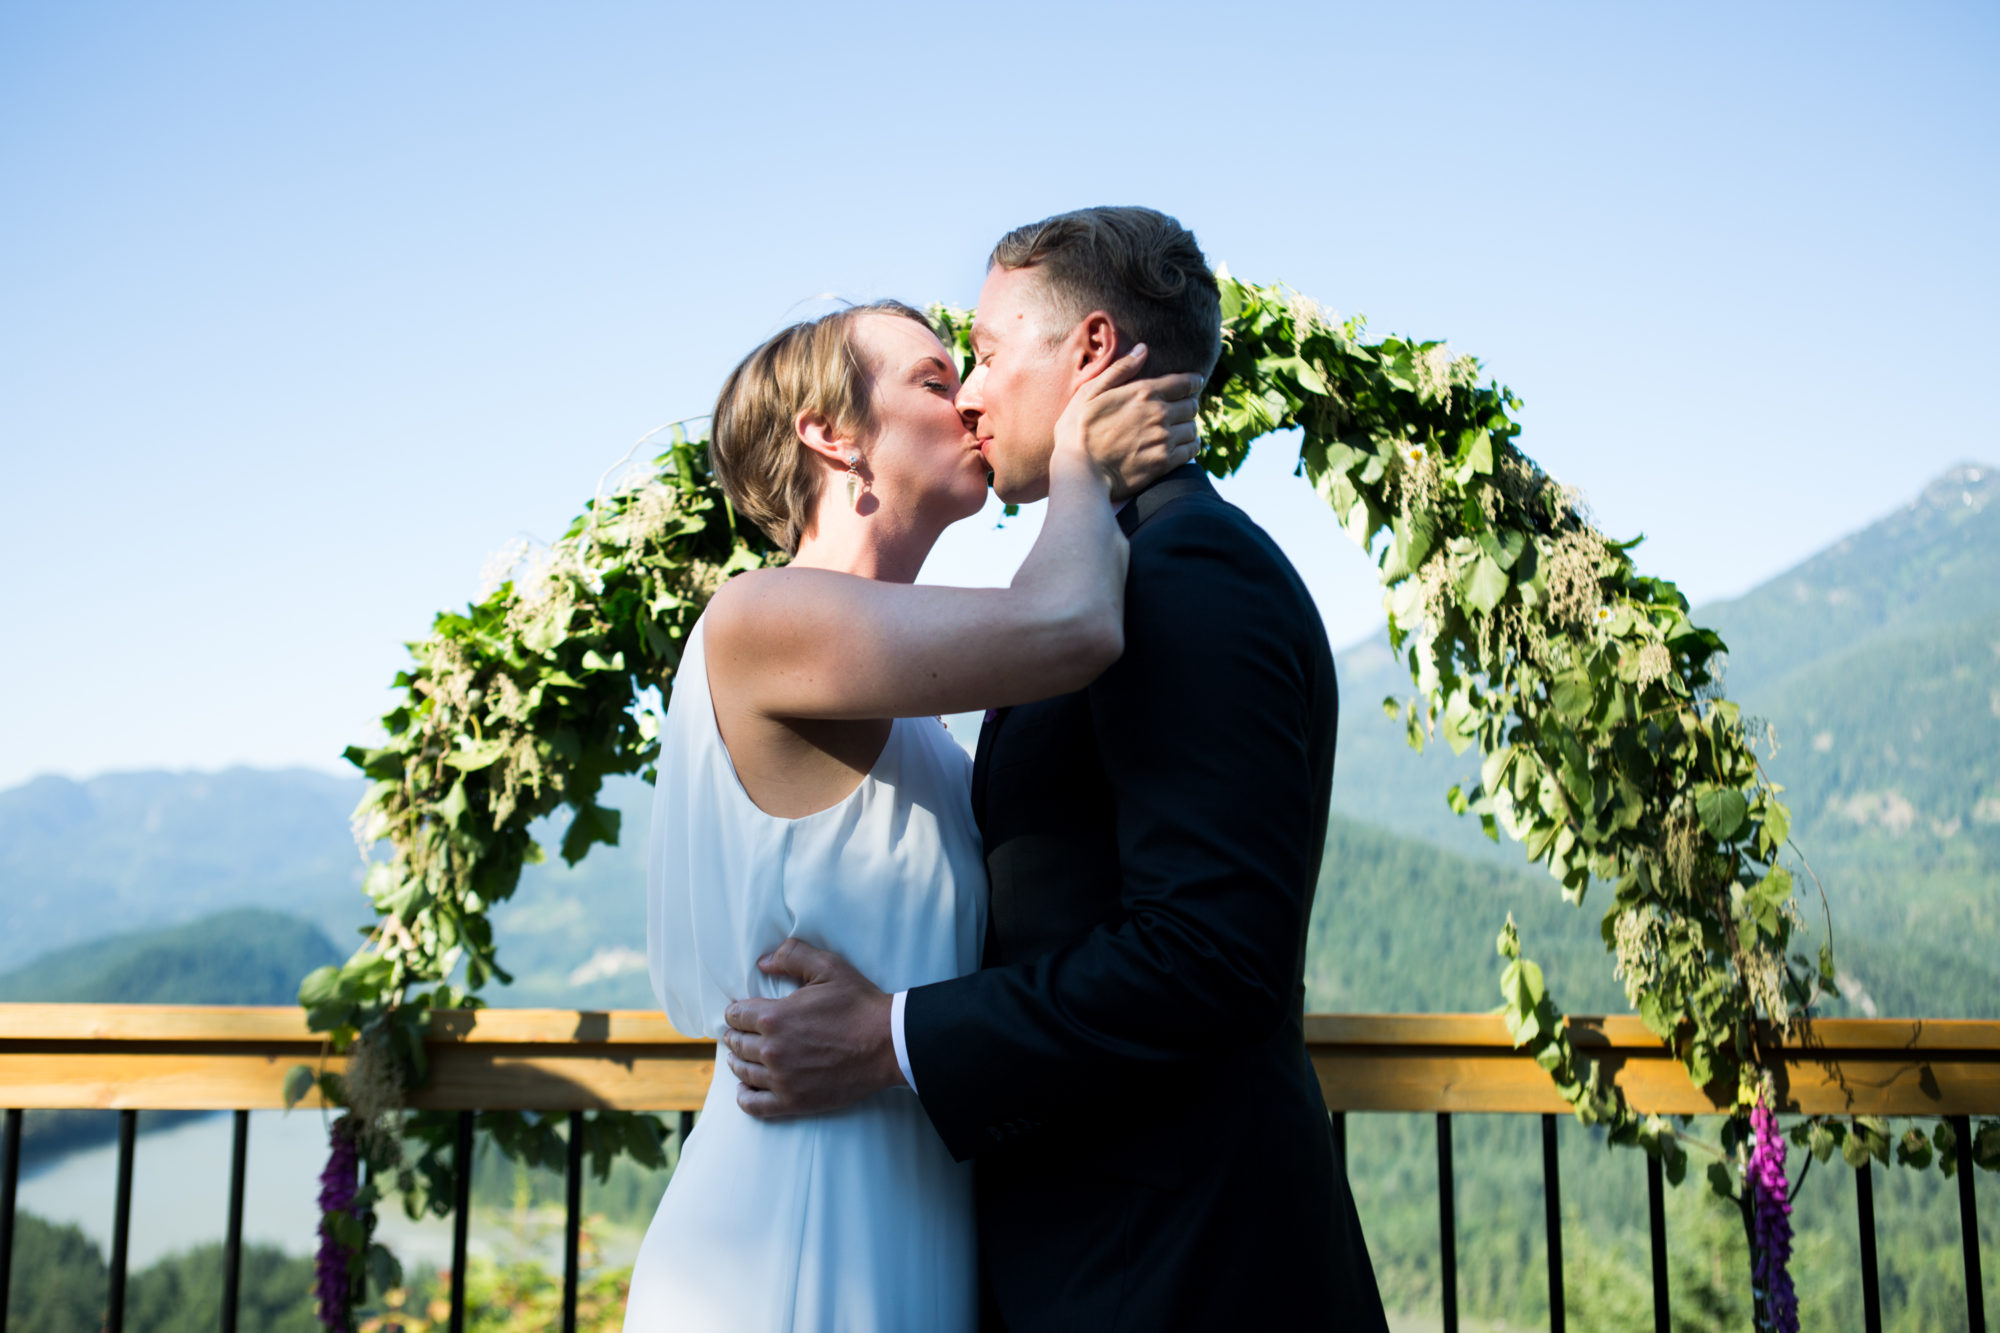 Ceremony Kiss Hope Wedding British Columbia American Creek Lodge Zsuzsi Pal Photography